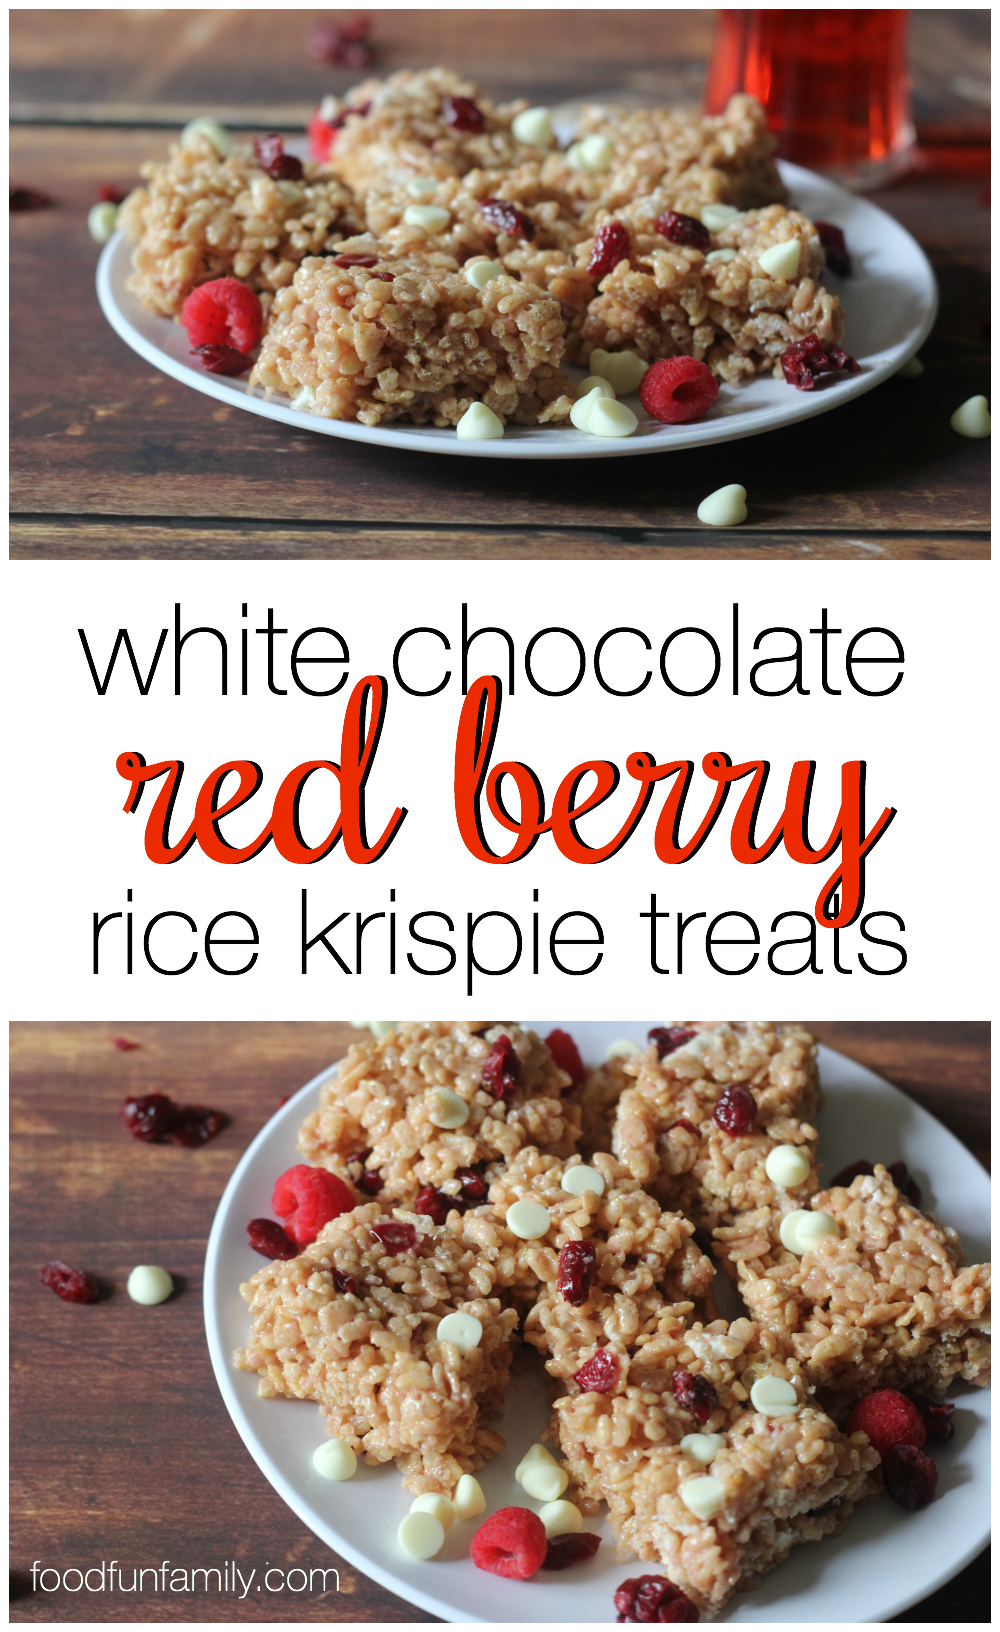 This white chocolate red berry rice krispie treats recipe was easy to make as well as sweet and tasty and incredibly moist. It's a perfect no-bake dessert for holidays like Valentine's Day or Christmas (actually, can you think of a time these would NOT be perfect?)